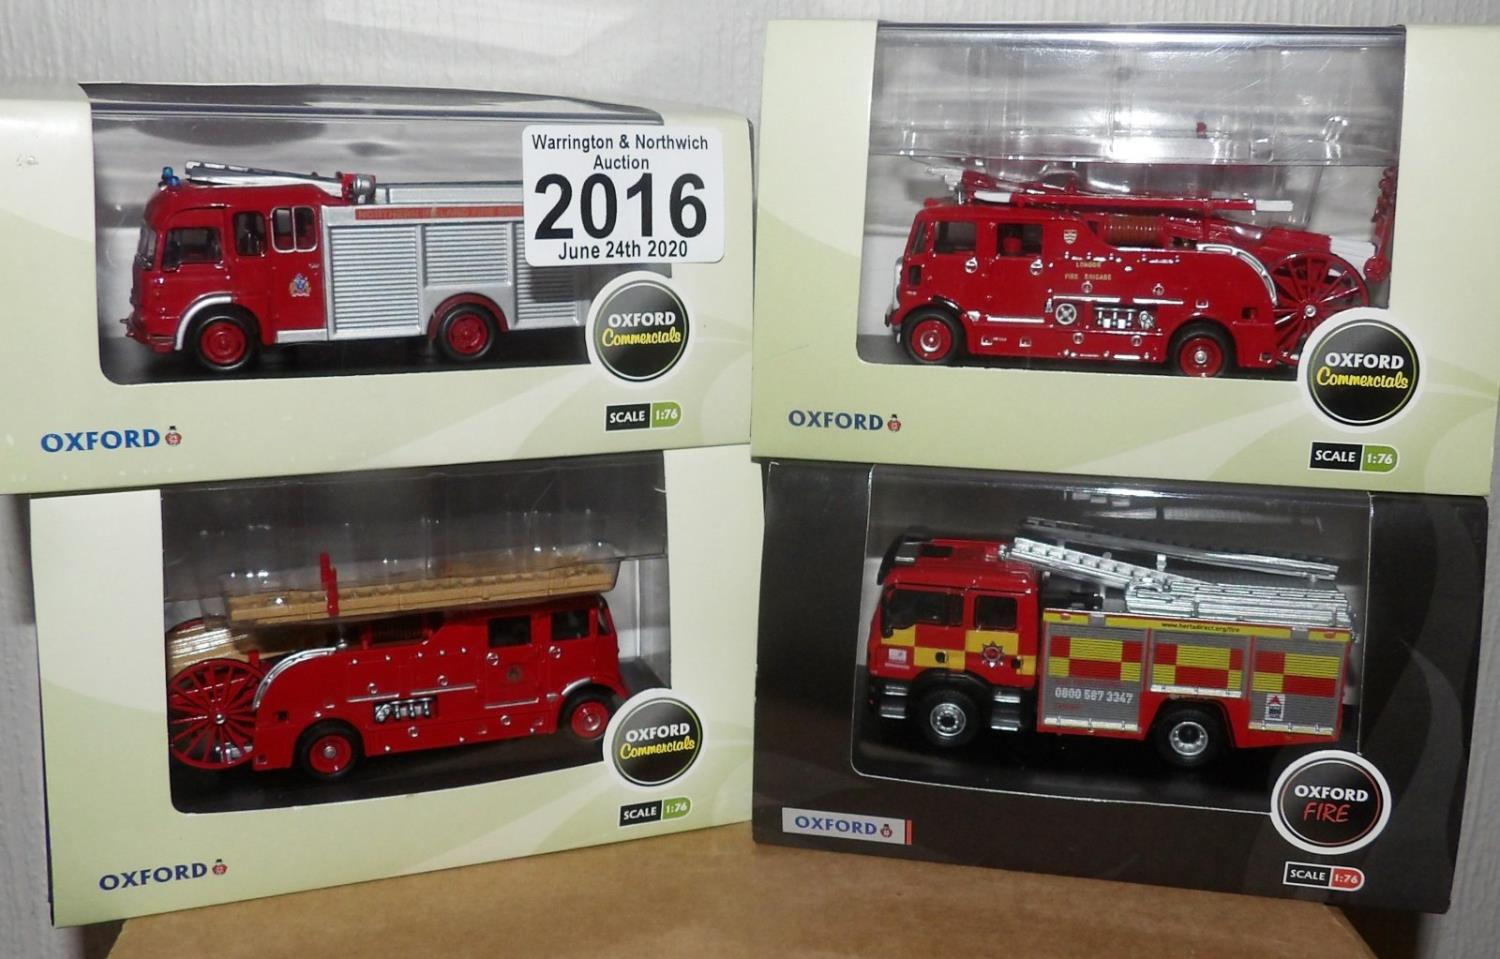 Lot 2016 - Oxford 1.76 Scale x 4 Mixed Fire Engines. P&P Group 2 (£18+VAT for the first lot and £2+VAT for